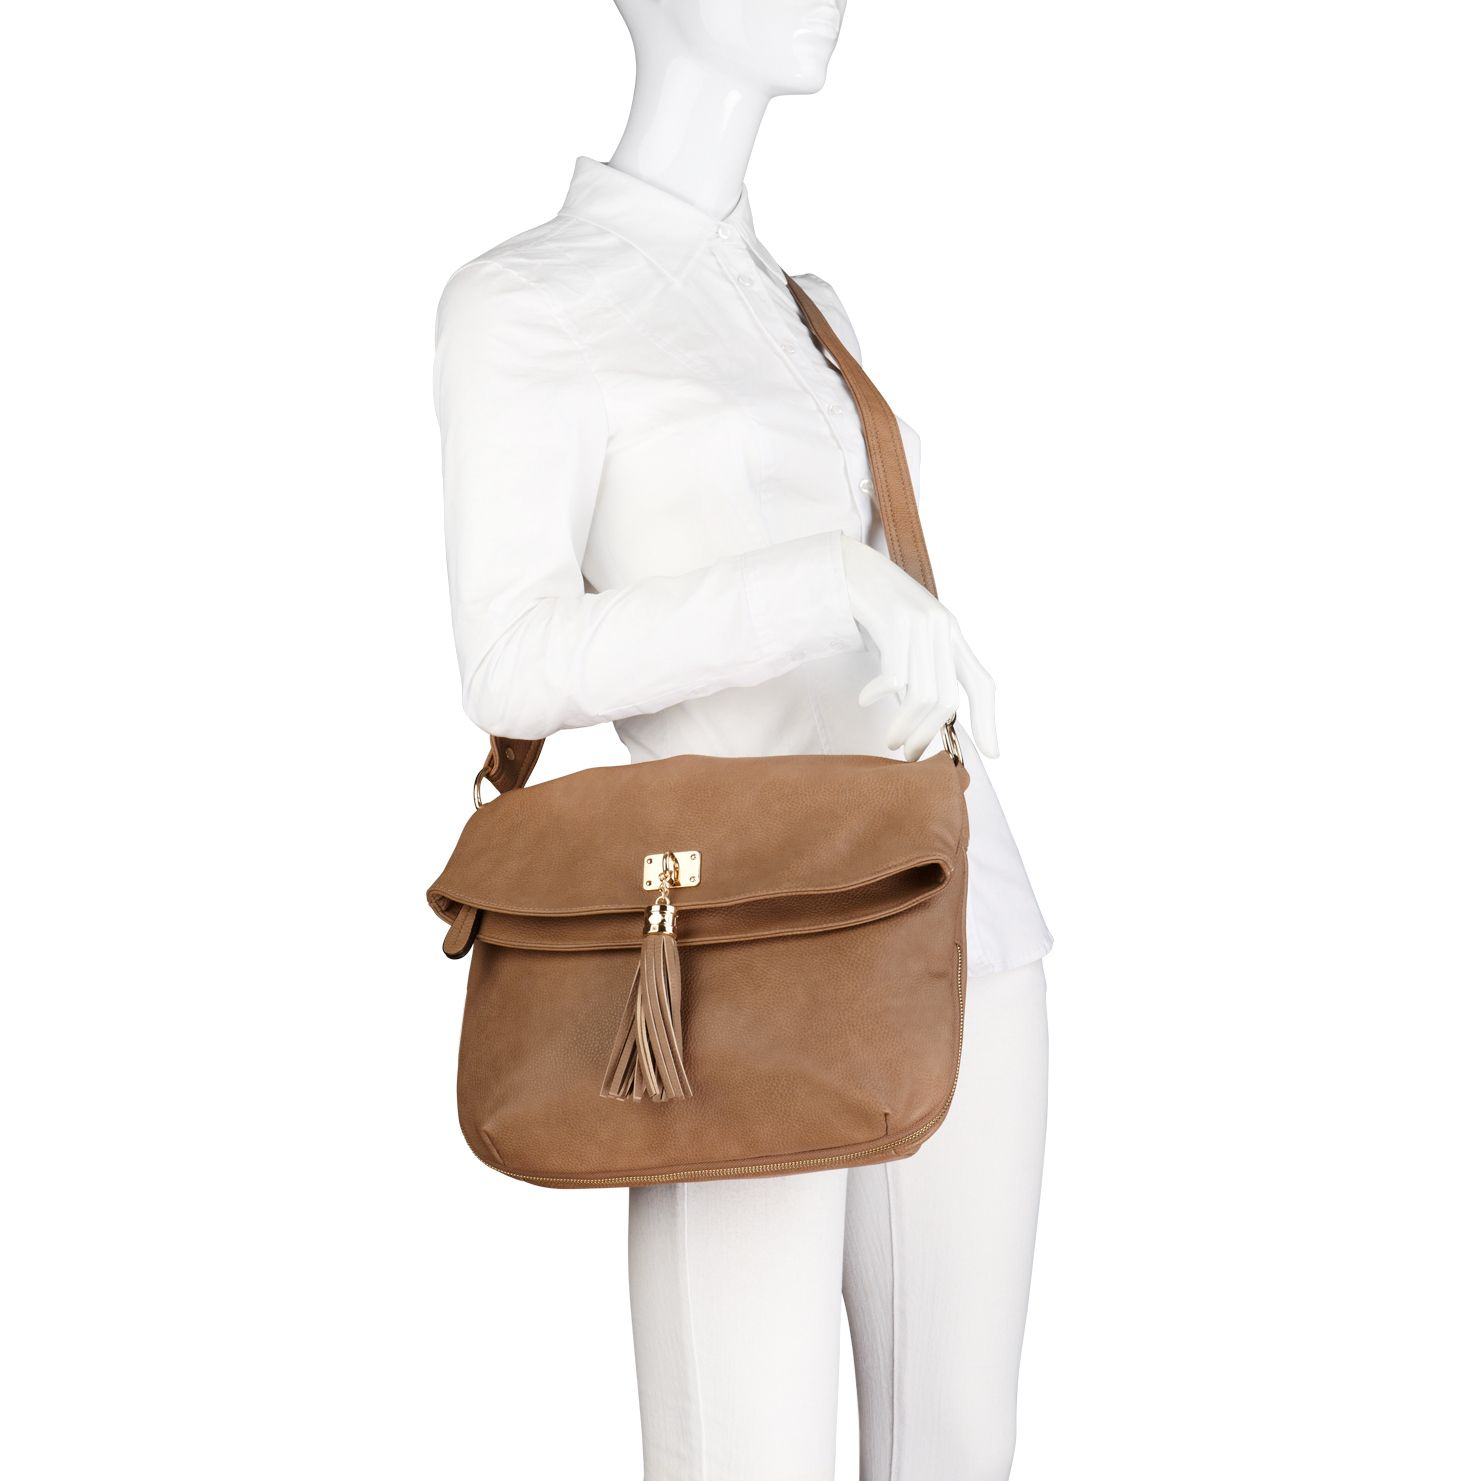 Eskeets cross-body bag